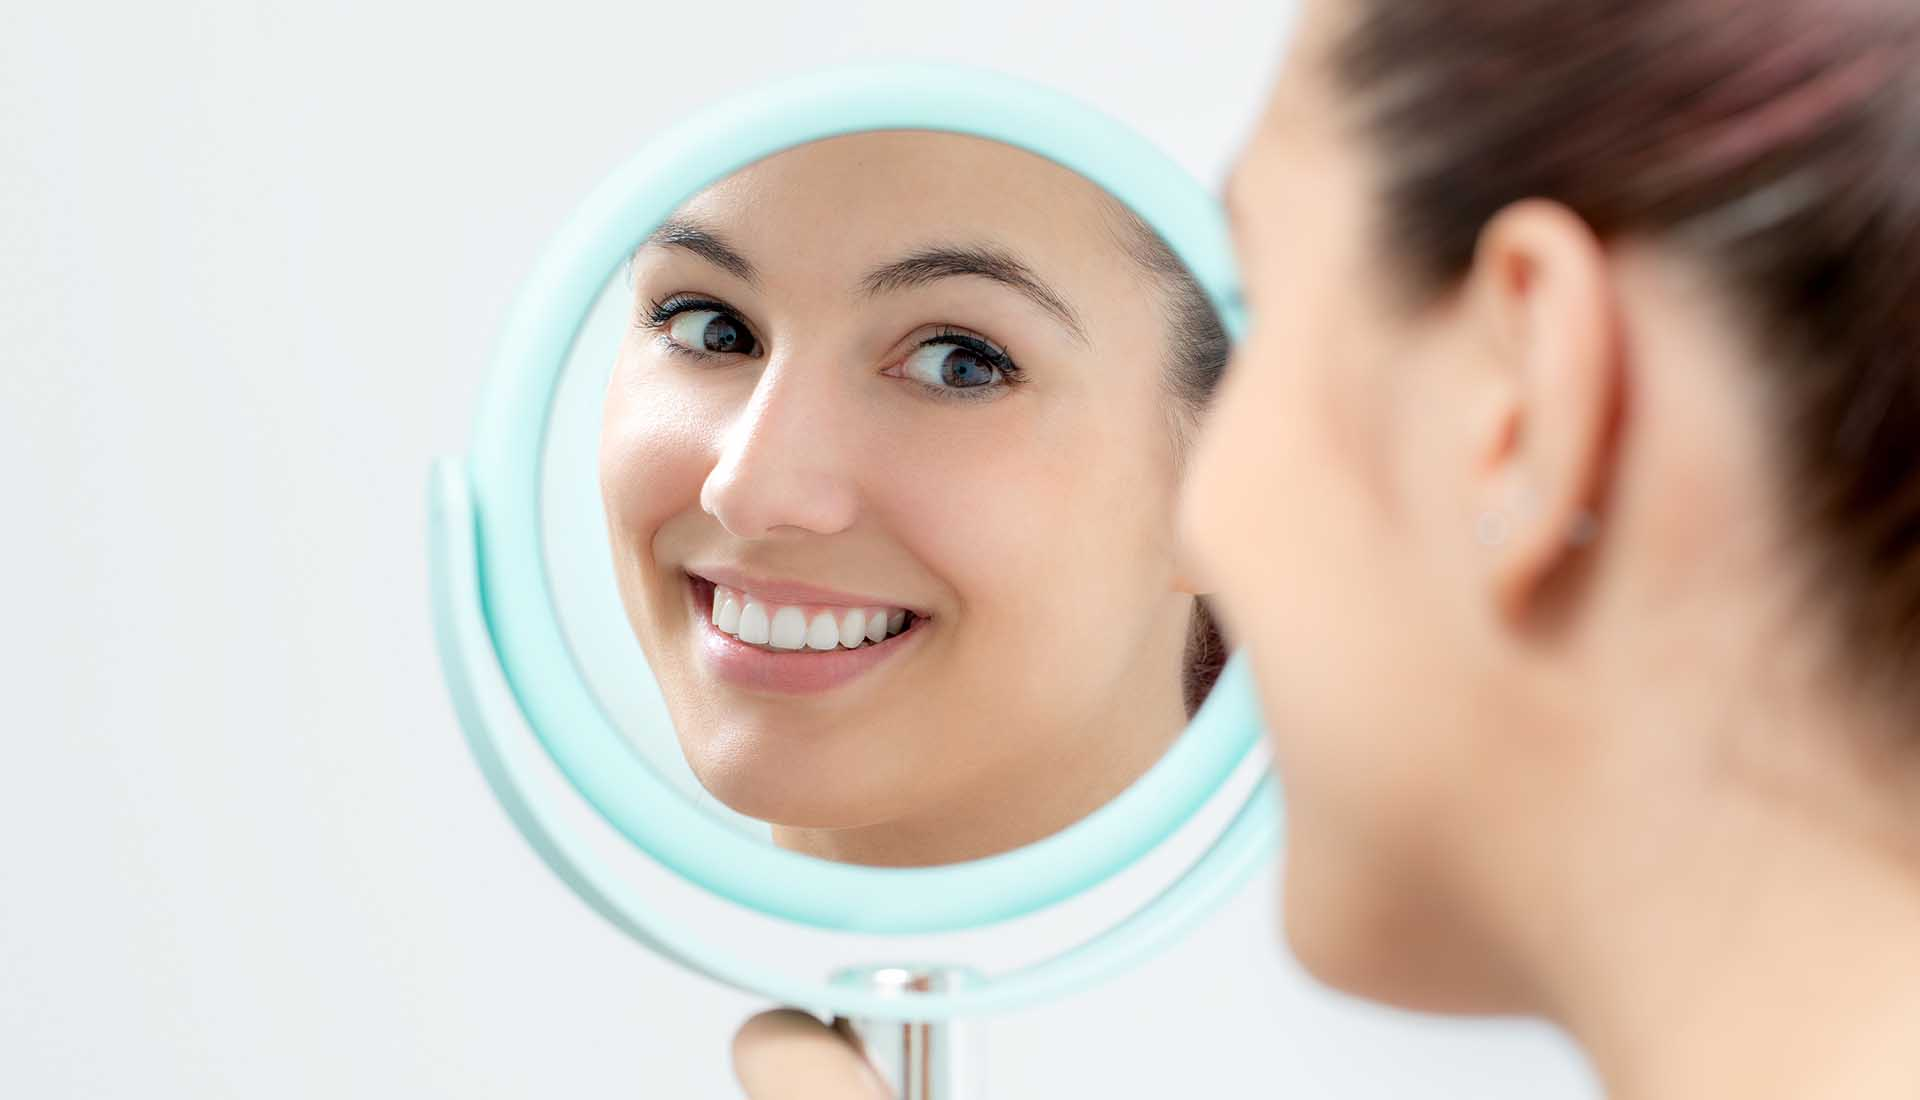 young woman looking at her perfect teeth in a mirror